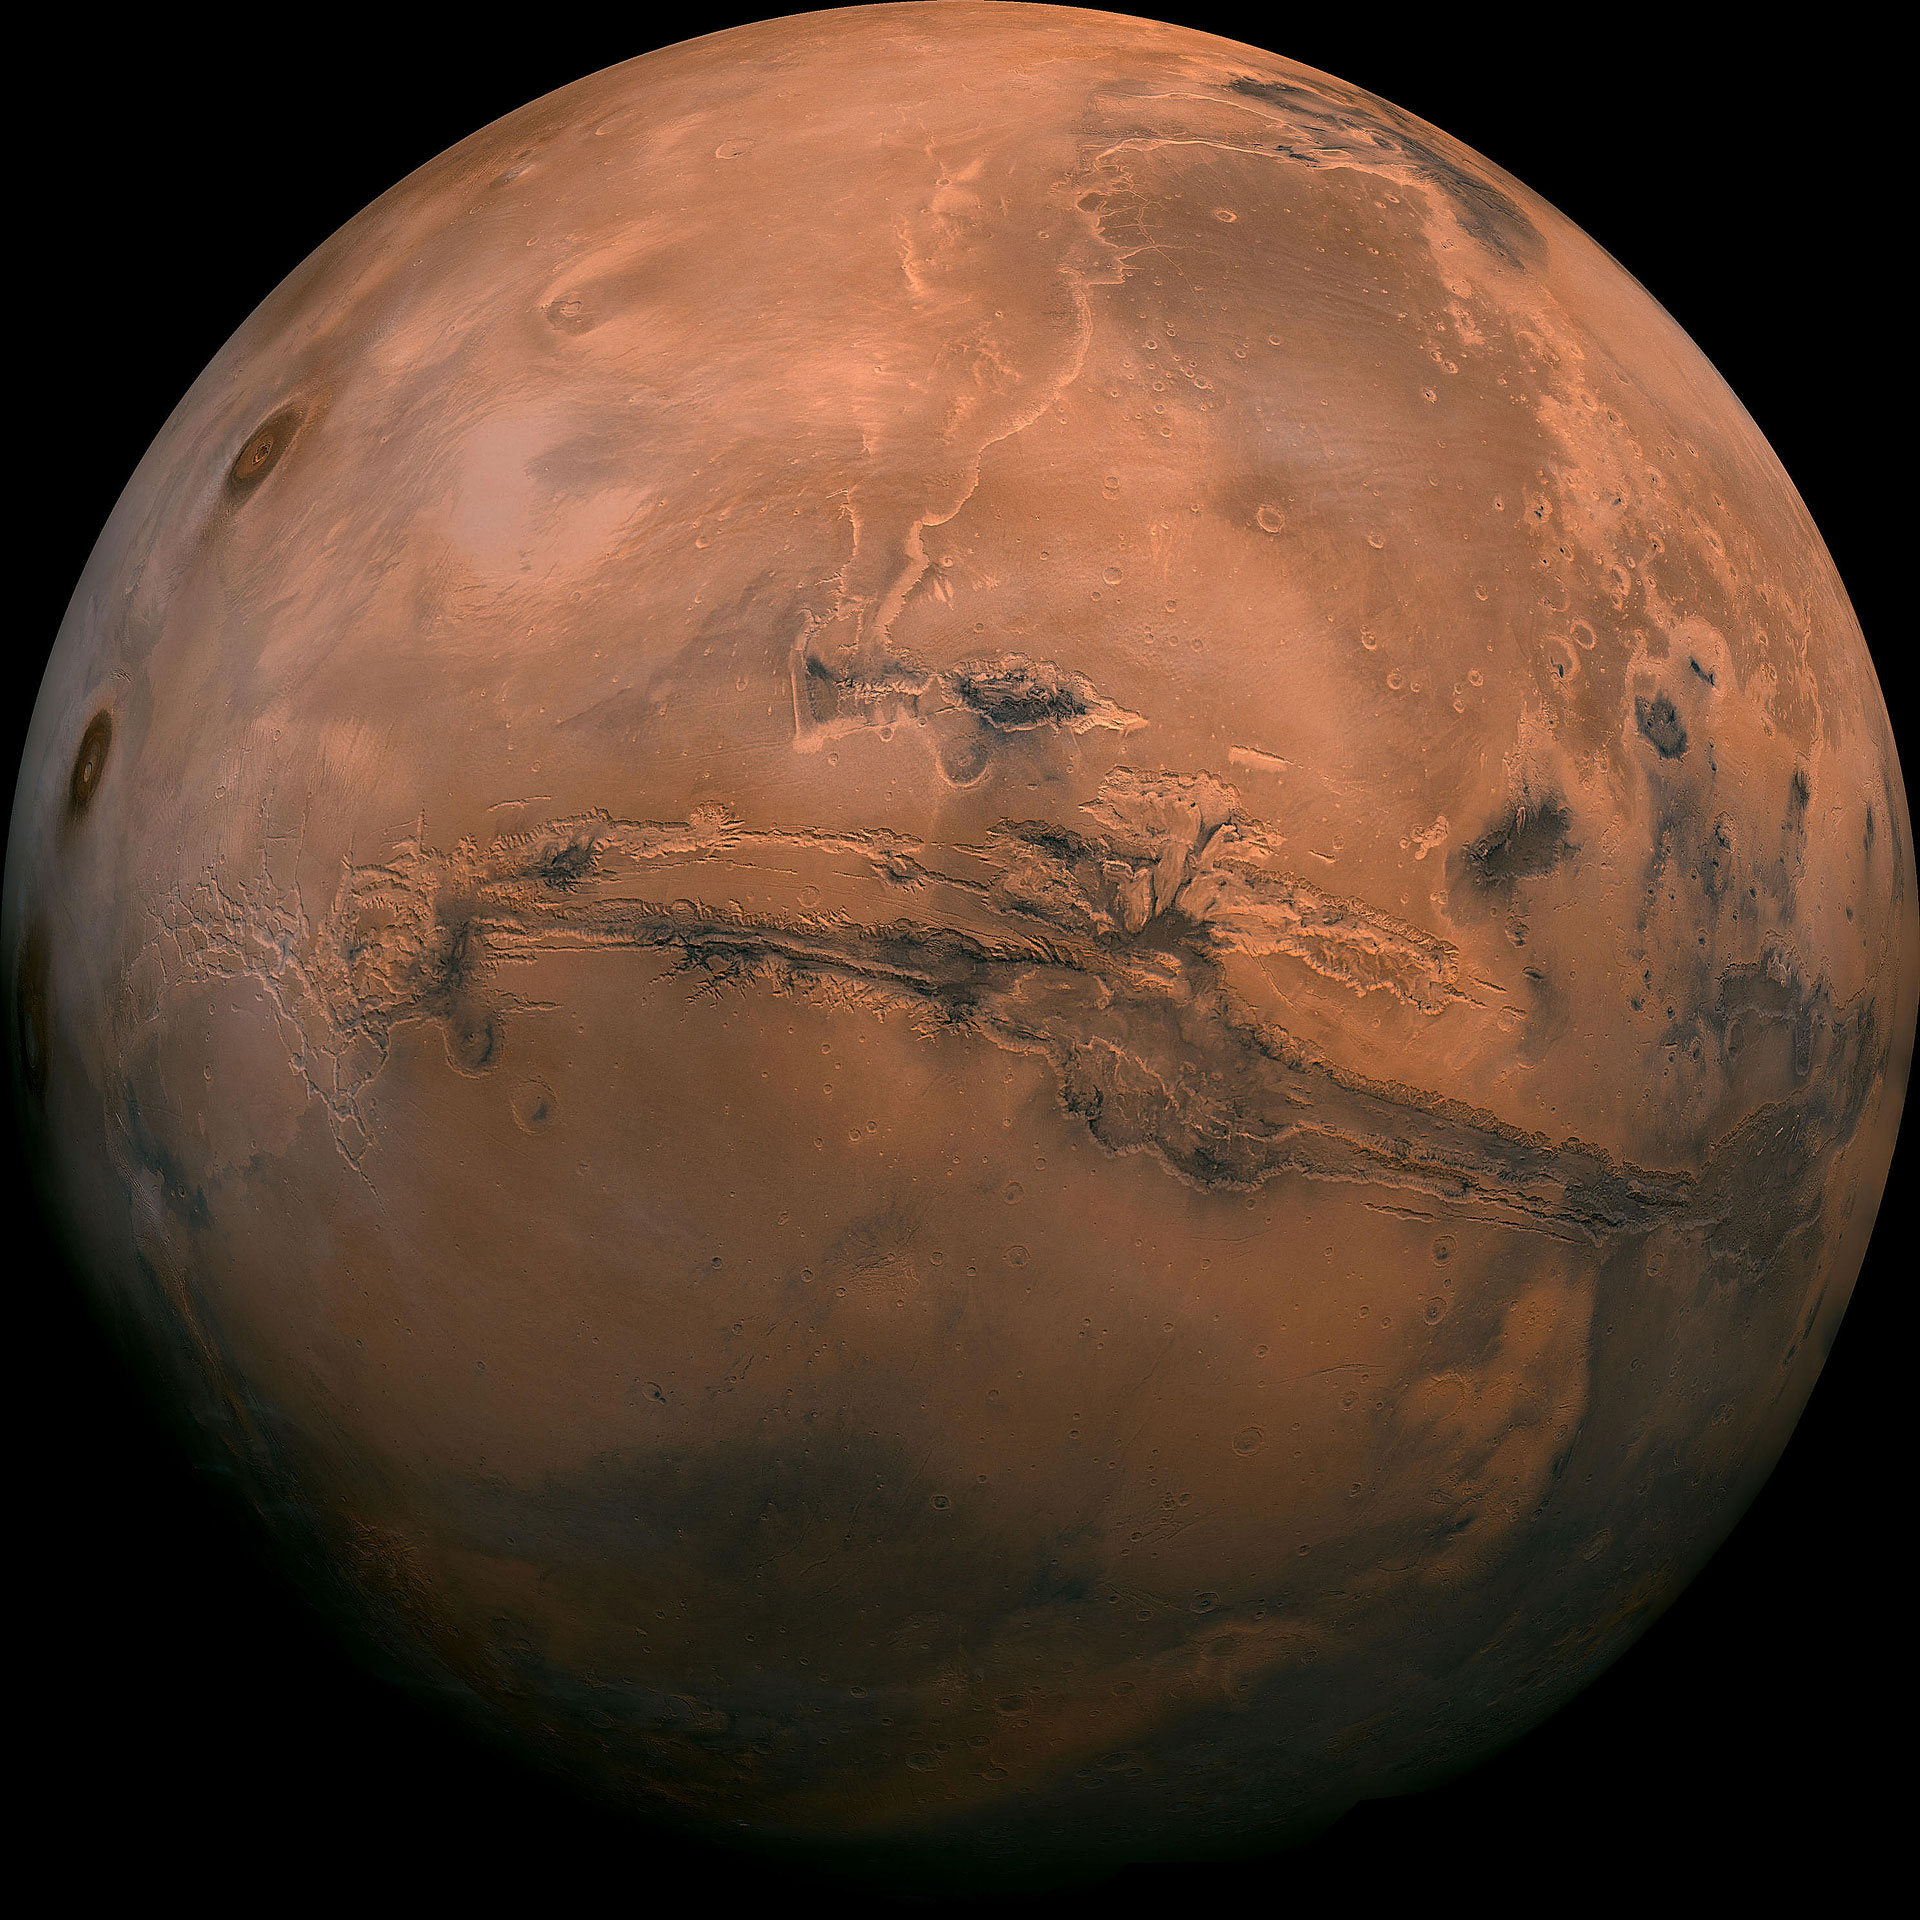 Study Shows Ancient Mars Had The Right Conditions For Underground Life